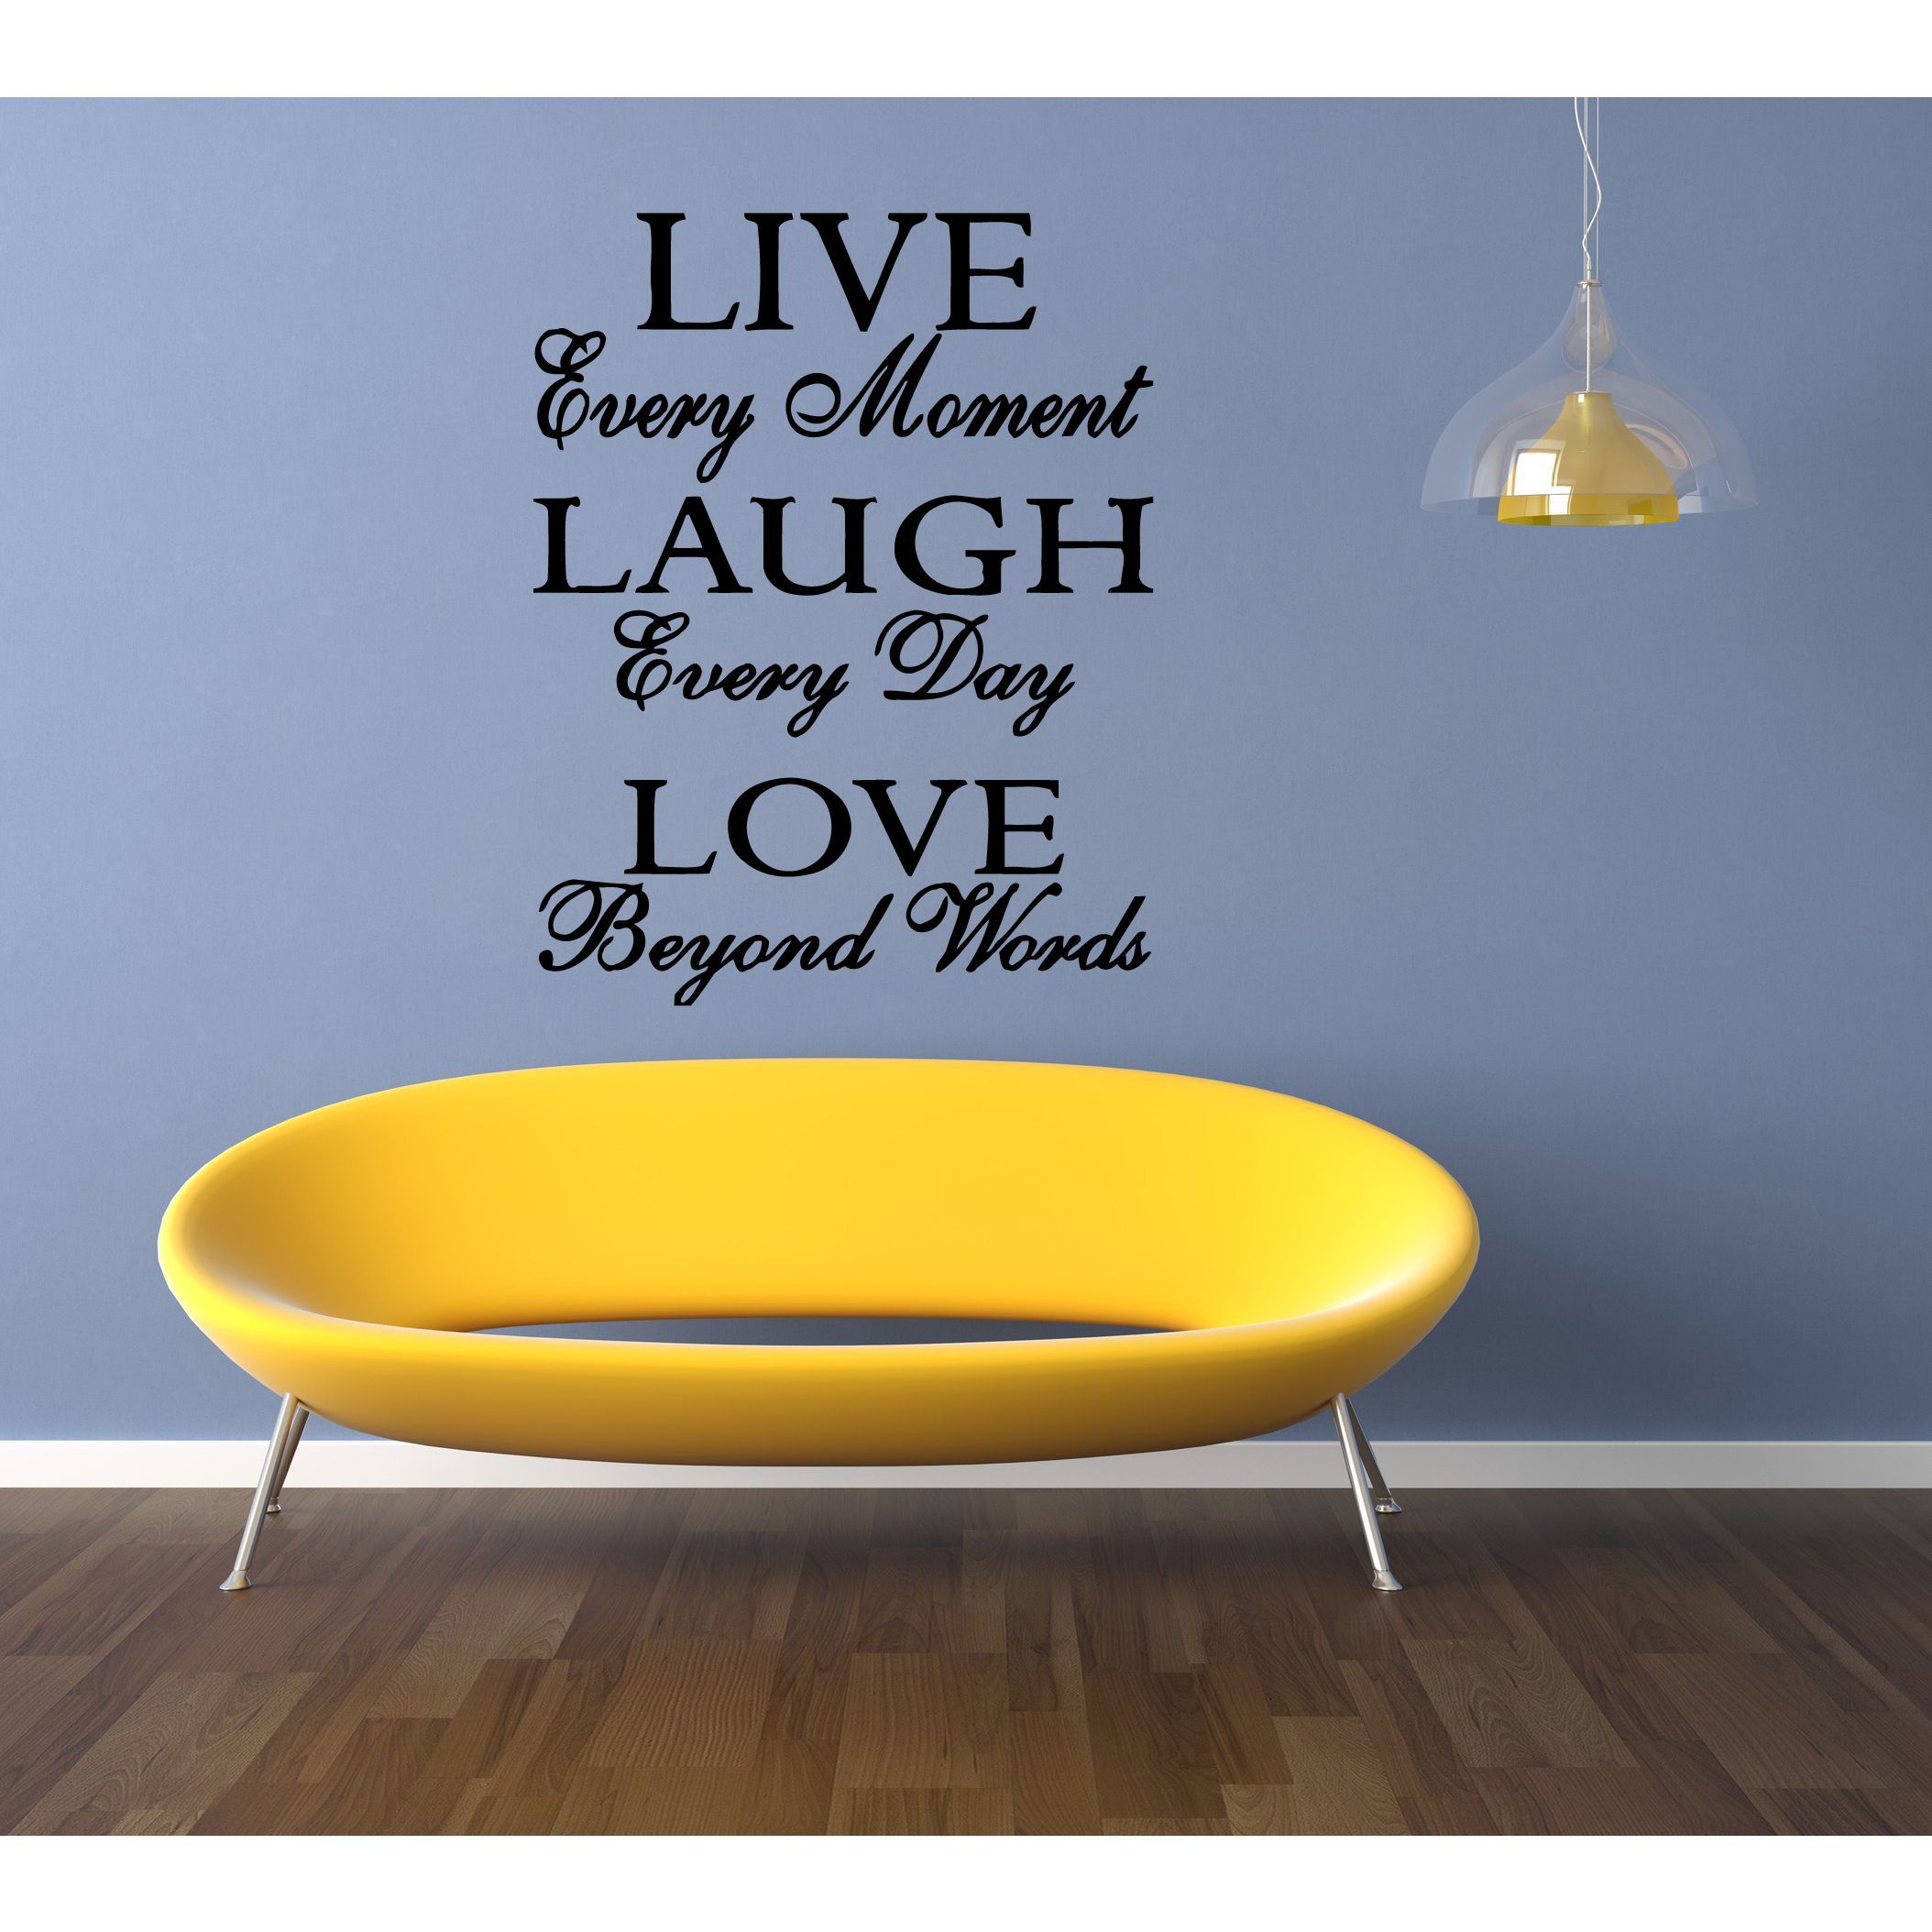 Live Every Moment quote Wall Art Sticker Decal | Products ...